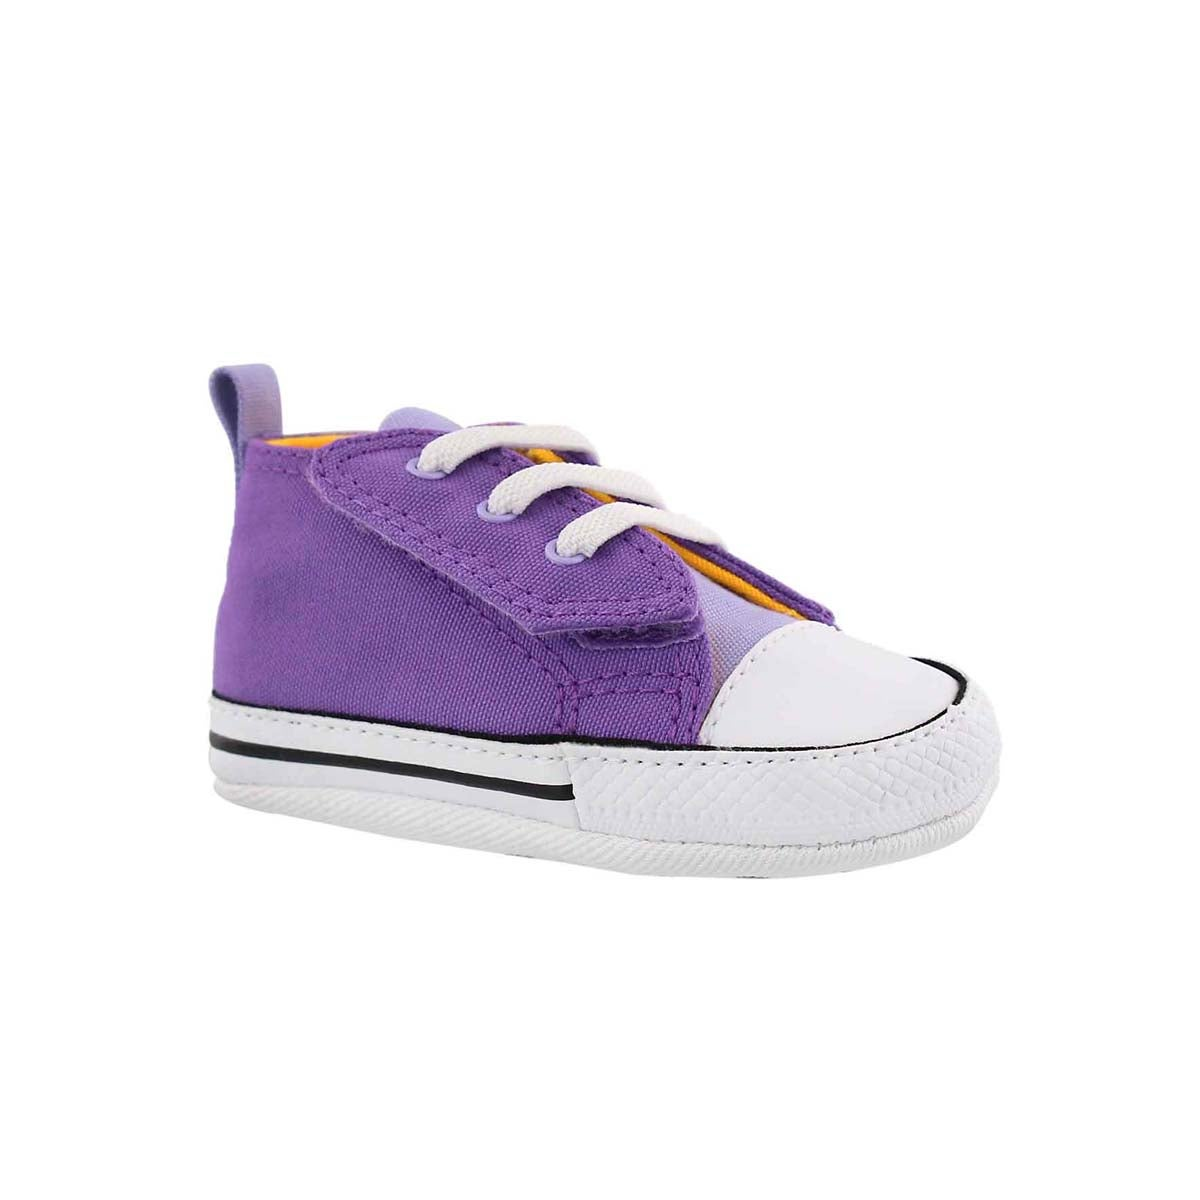 Infants' CT ALL STAR FIRST STAR violet sneakers